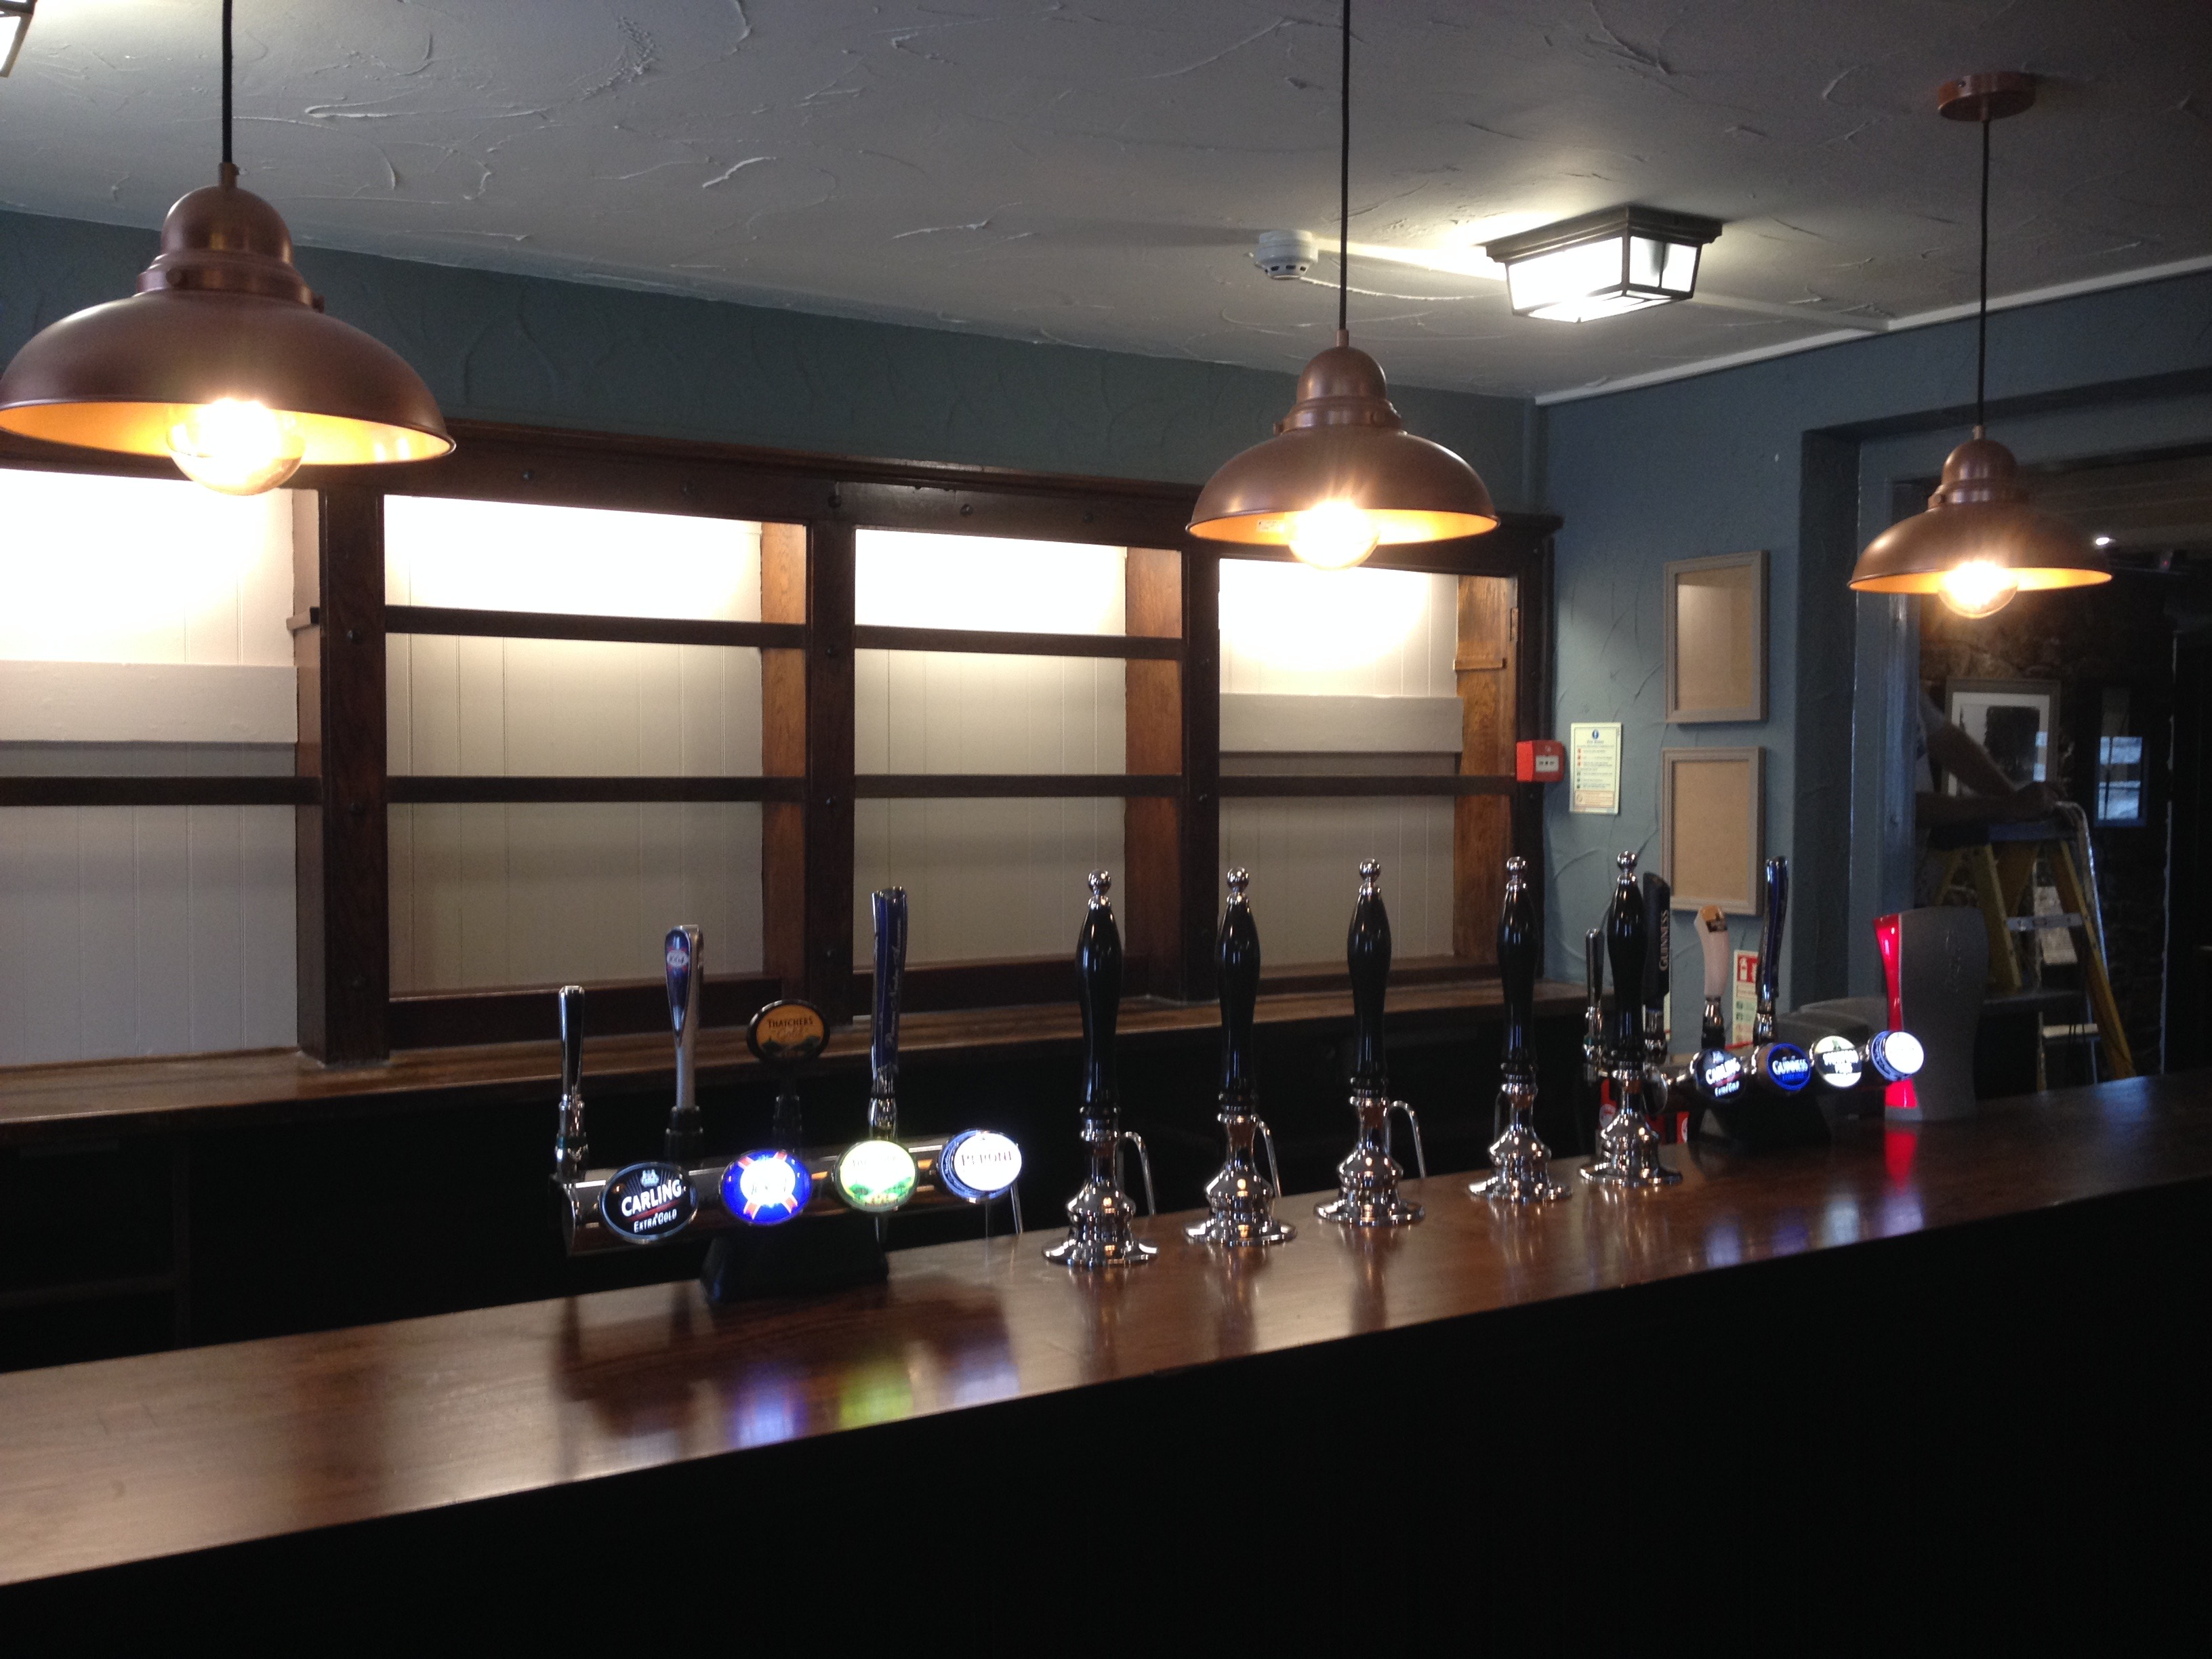 The newly painted bar